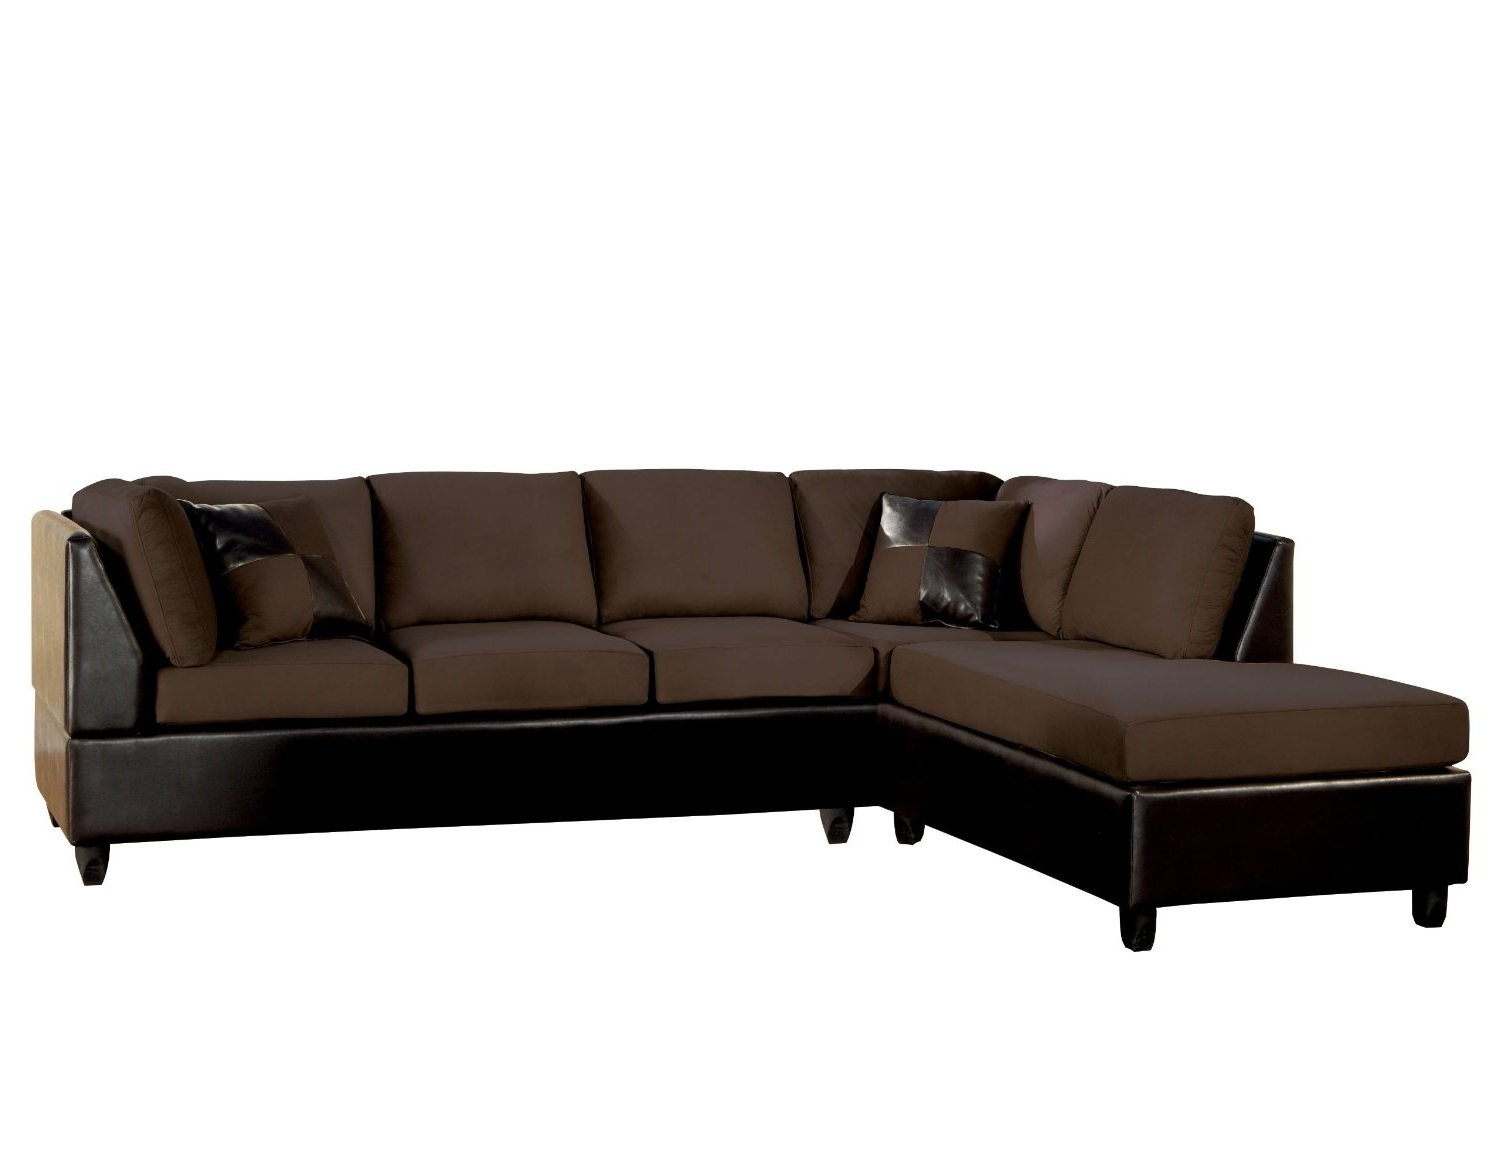 Ashley Furniture Sofa Bed Apartment Size Sleeper Sofa Sectional Regarding Current Chaise Sofa Sleepers (View 1 of 15)